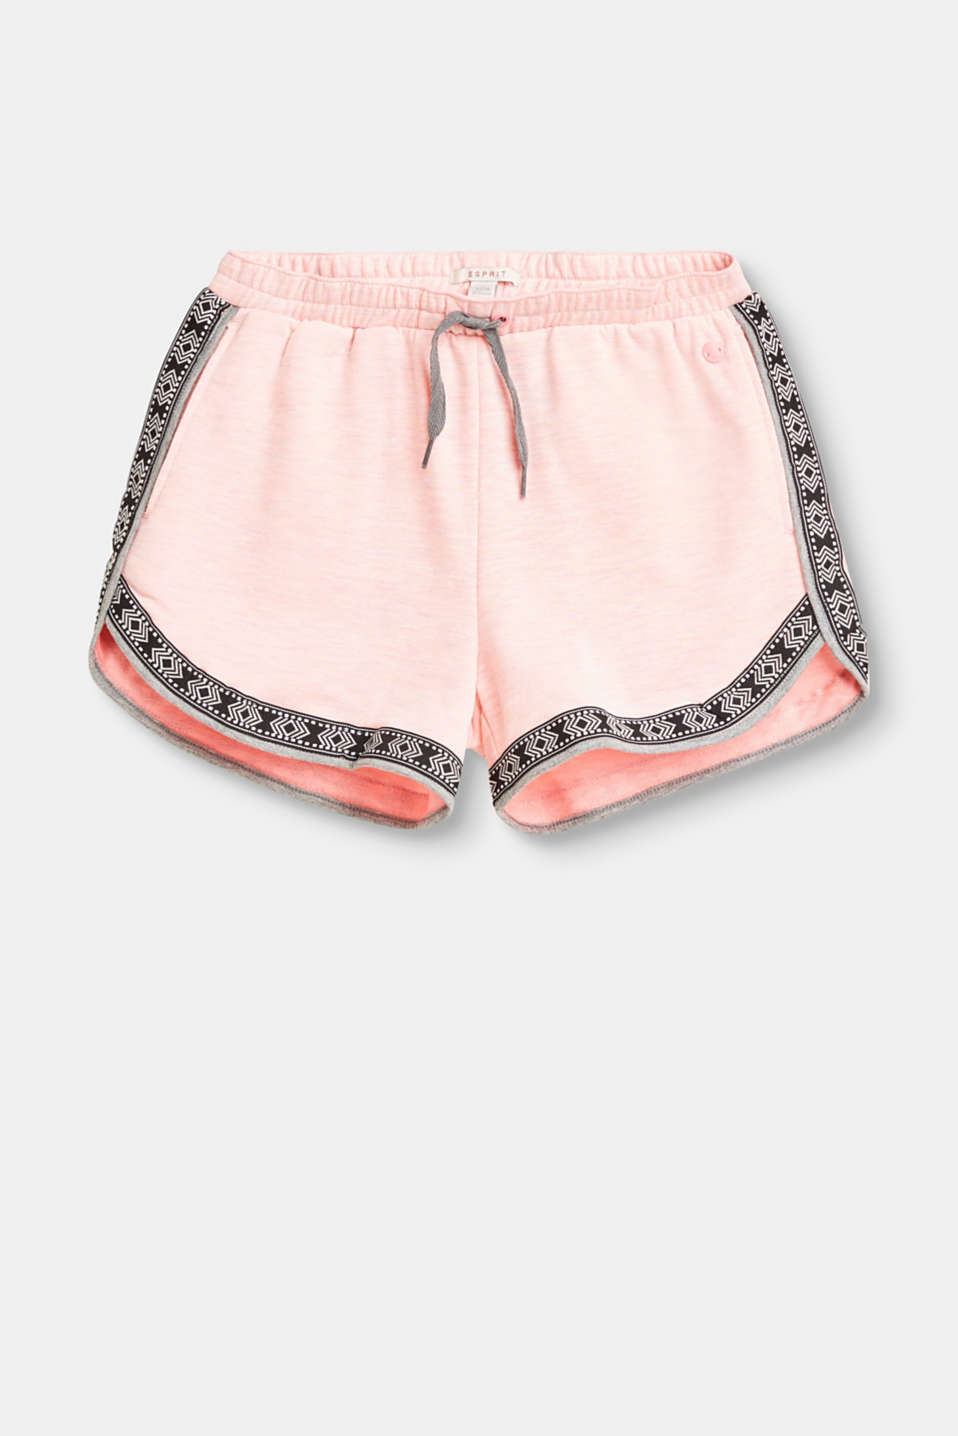 Esprit - Blended cotton-jersey shorts with ethnic borders